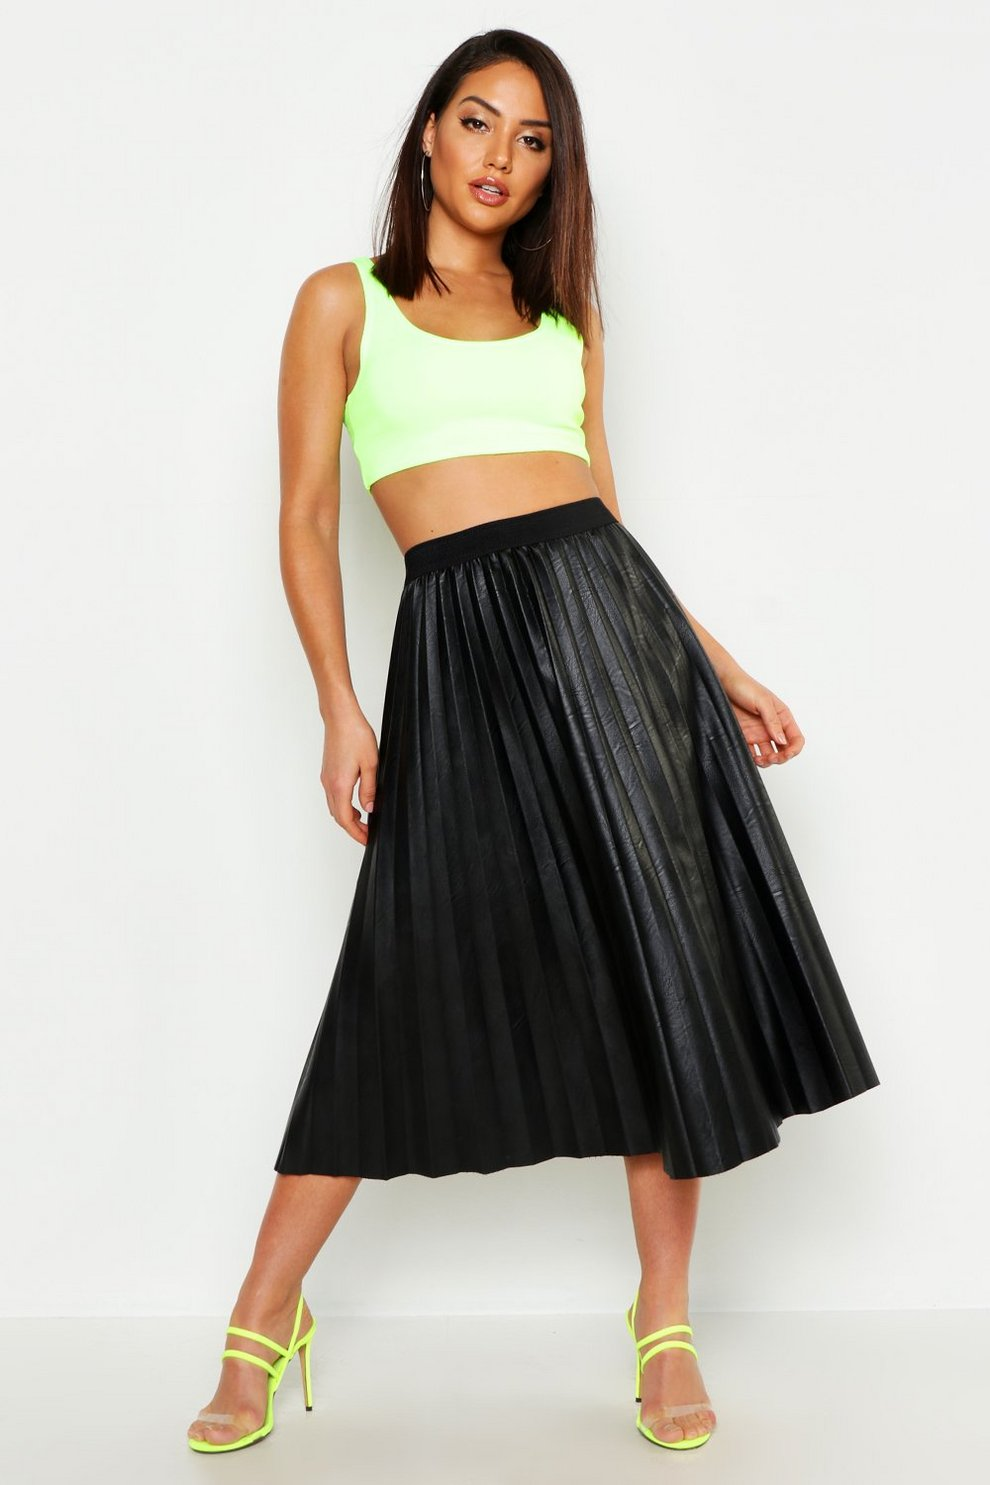 84dbcf1ca Womens Black Faux Leather Pleated Skirt. Hover to zoom